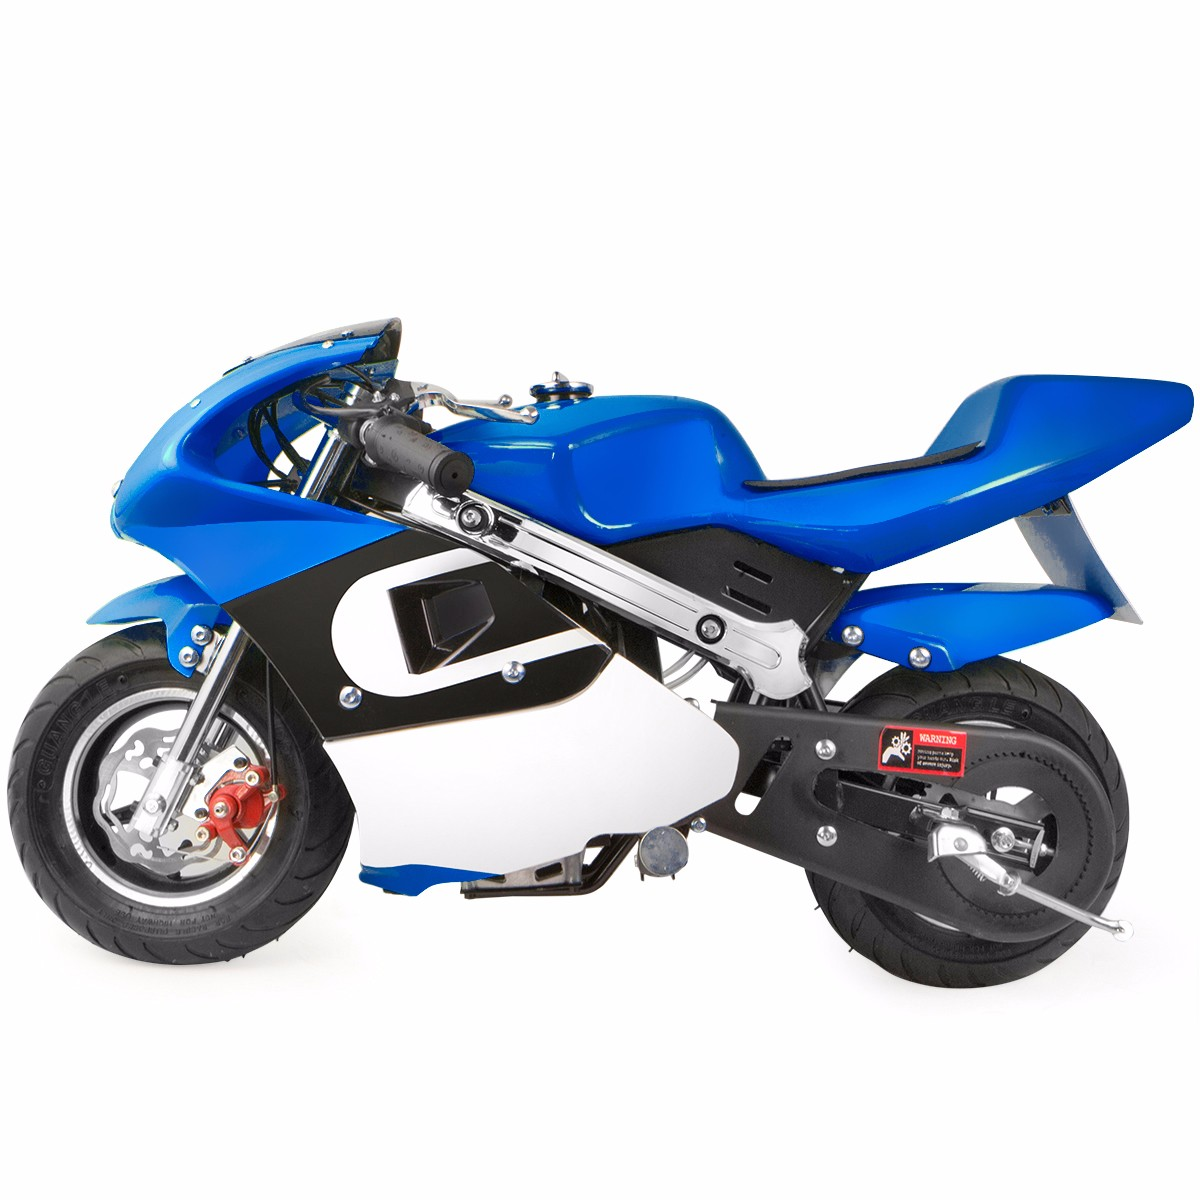 XtremepowerUS Gas Pocket Bike Motorcycle 40cc 4-stroke Engine, Blue